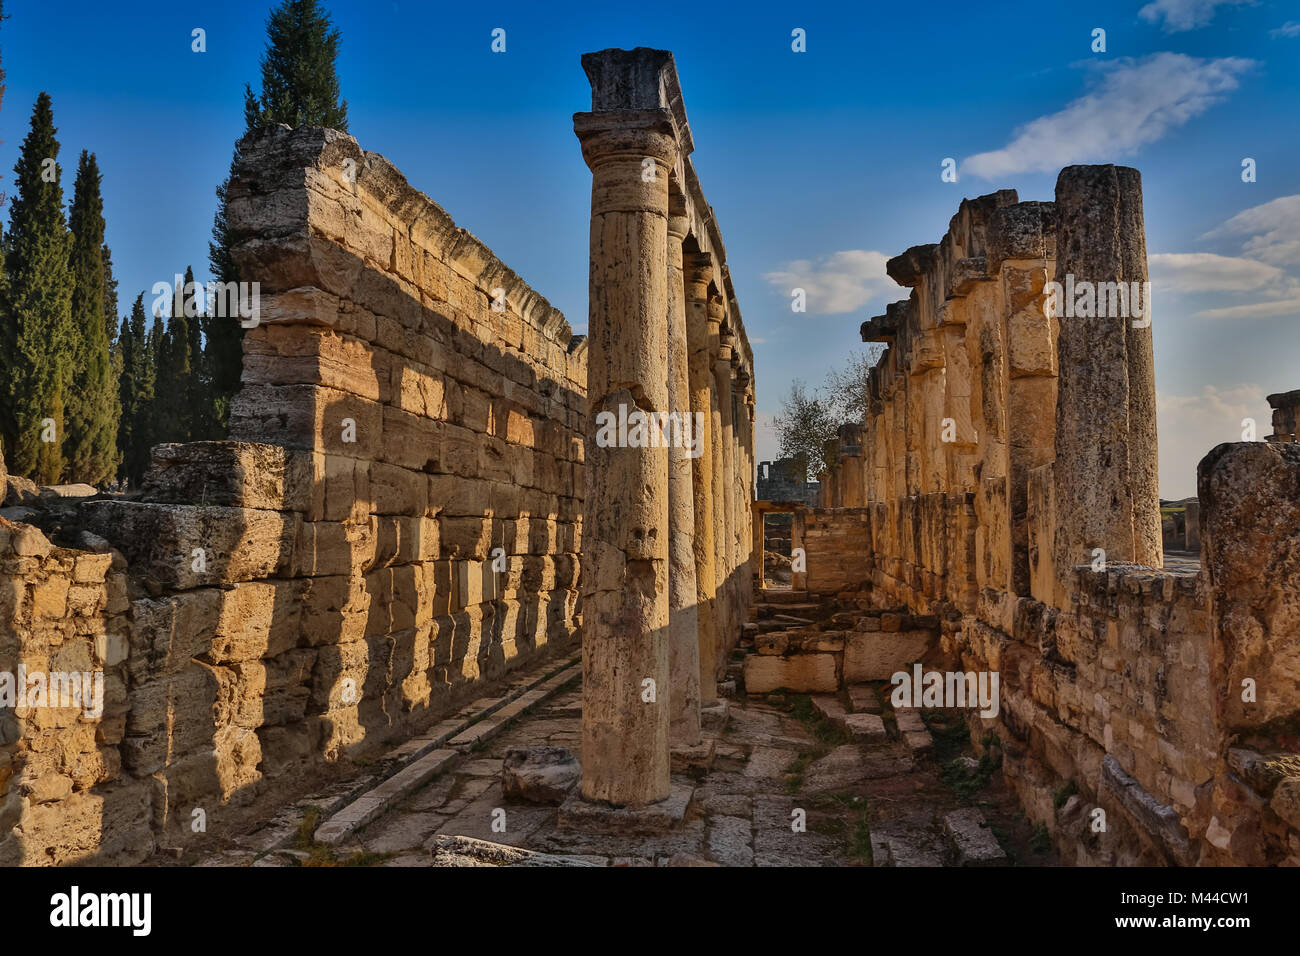 temple aphrodite in ancient greek stockfotos temple aphrodite in ancient greek bilder alamy. Black Bedroom Furniture Sets. Home Design Ideas